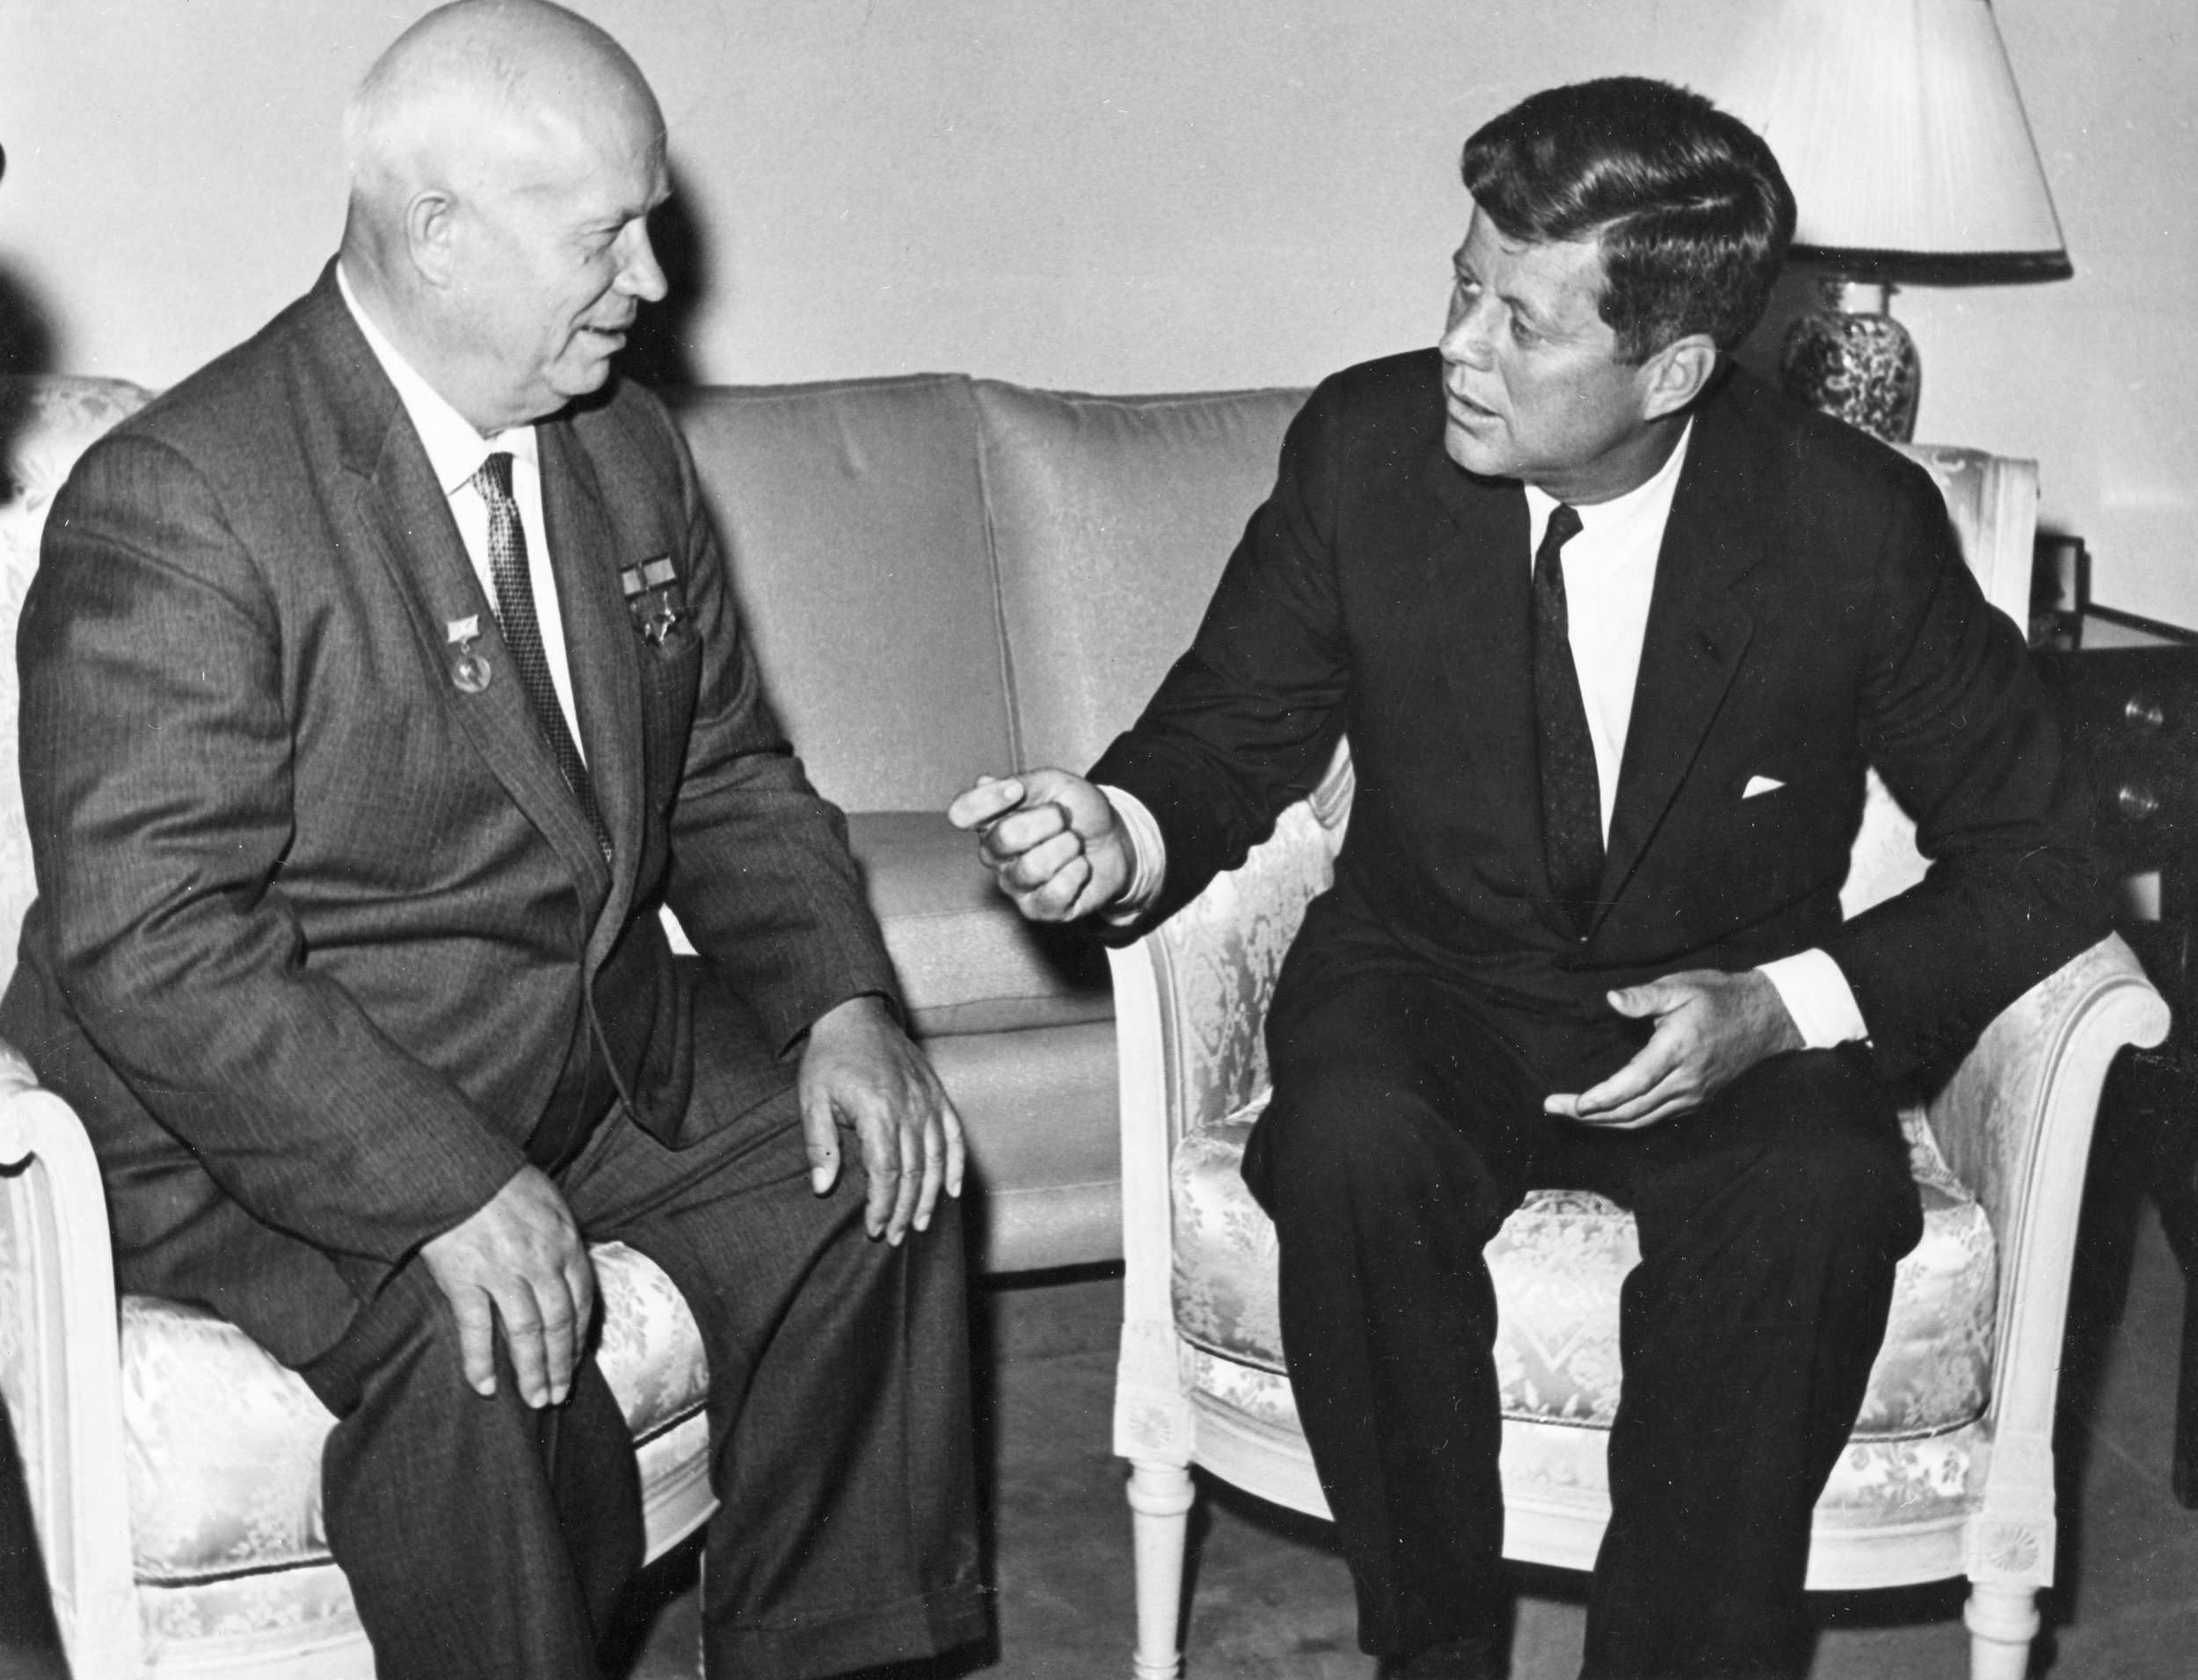 Jfk Quotes Wallpapers Trump Putin Meeting Unlikely To Go As Badly As John F